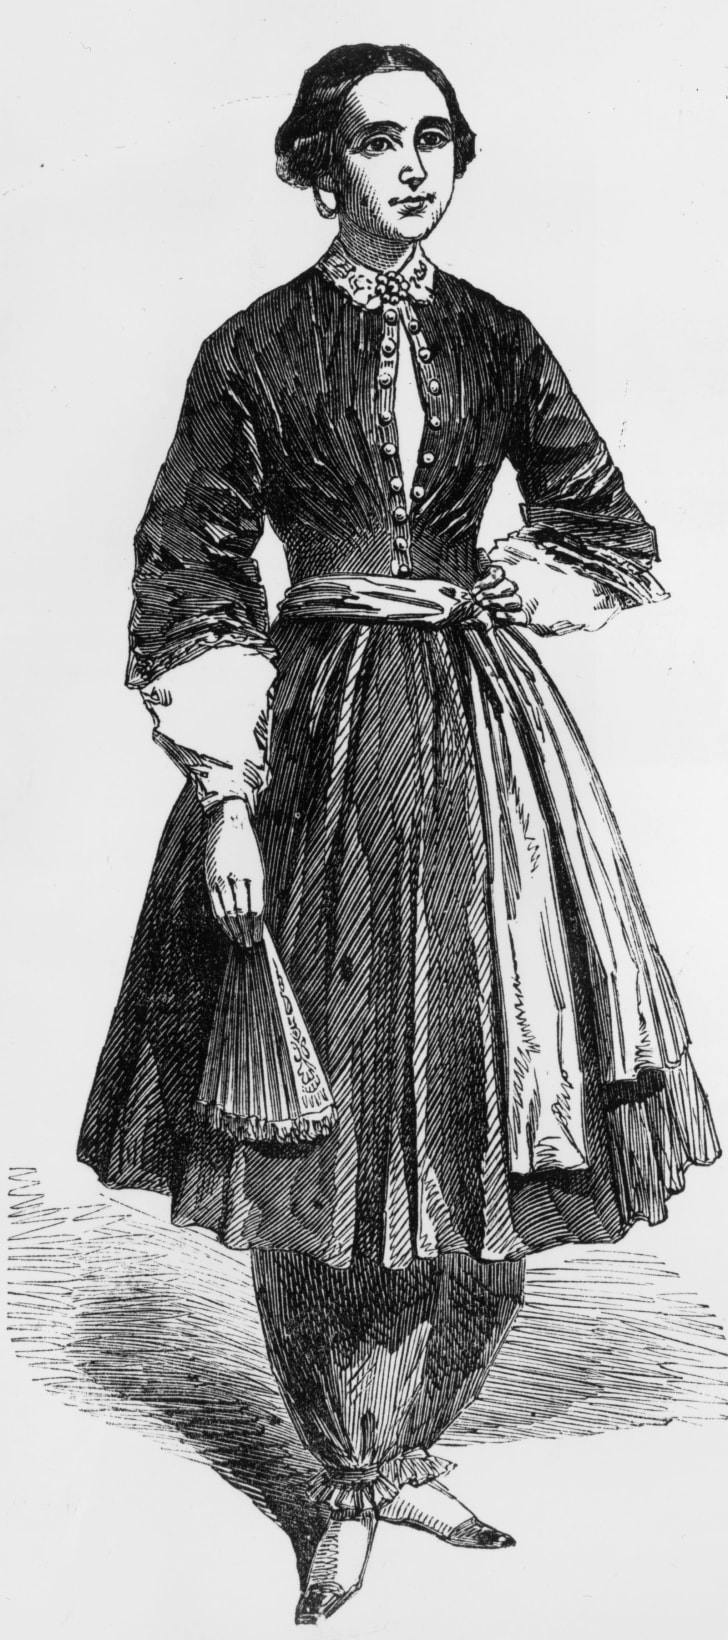 Amelia Bloomer in the outfit she designed, with